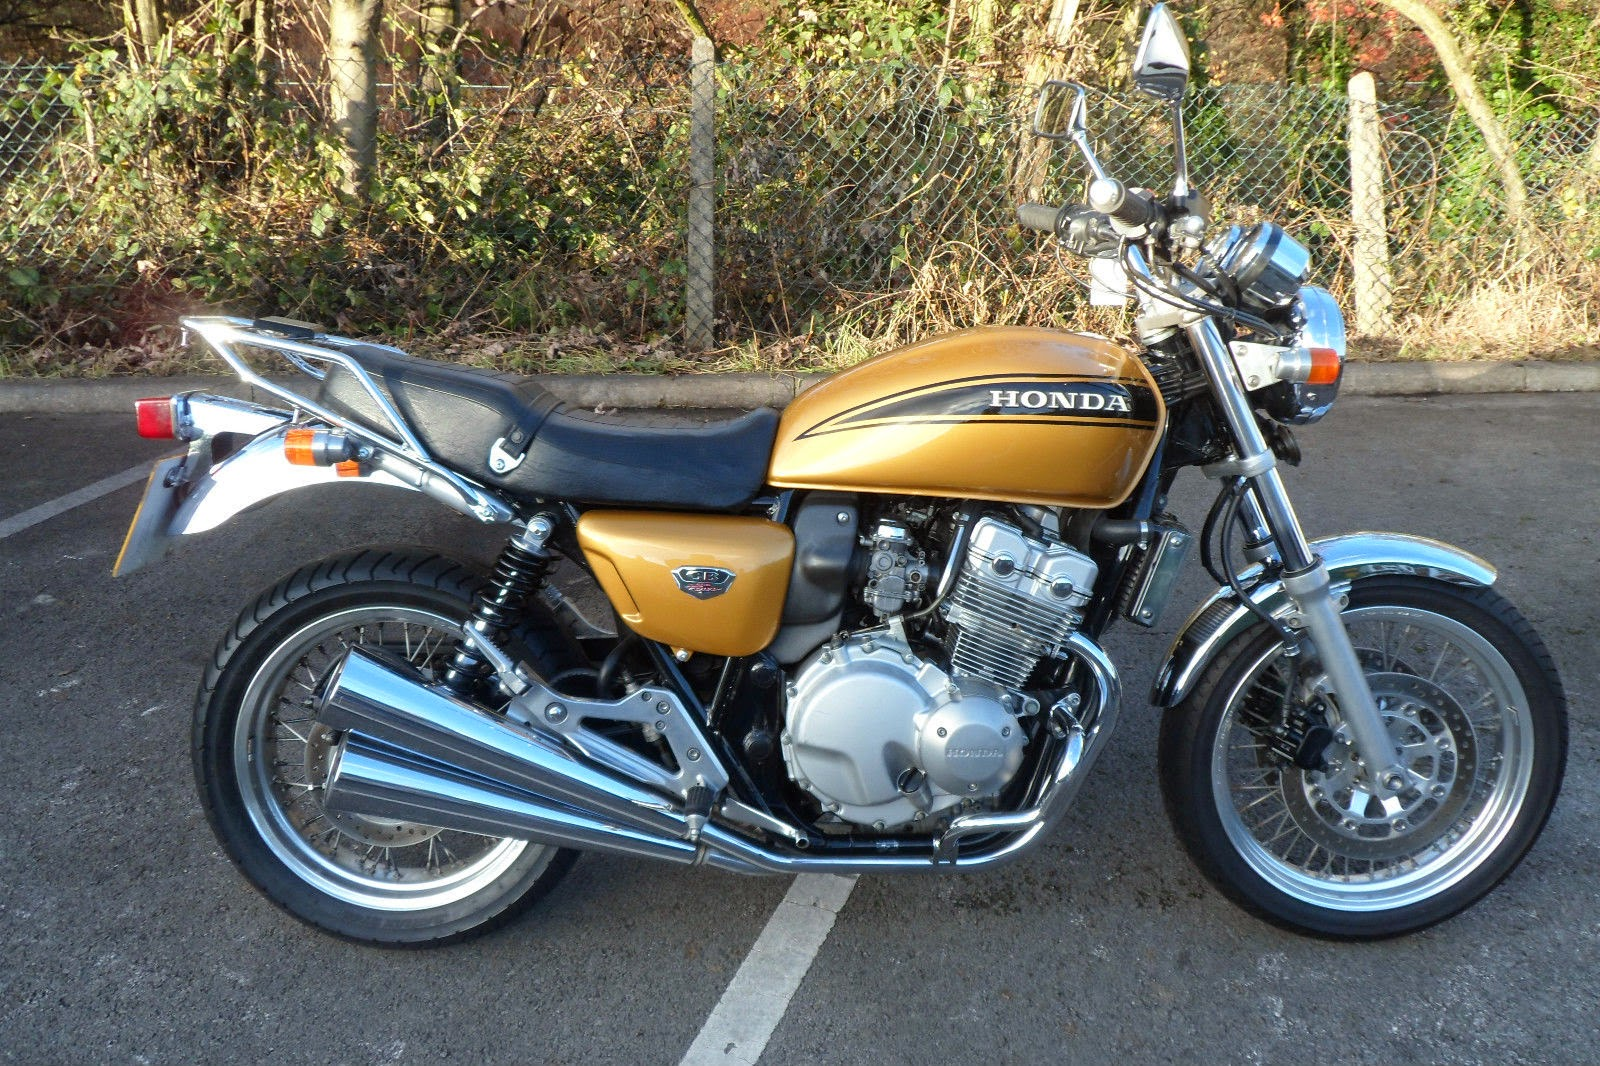 Gold colour CB400 Four NC36 for sale in England!   Fab Four